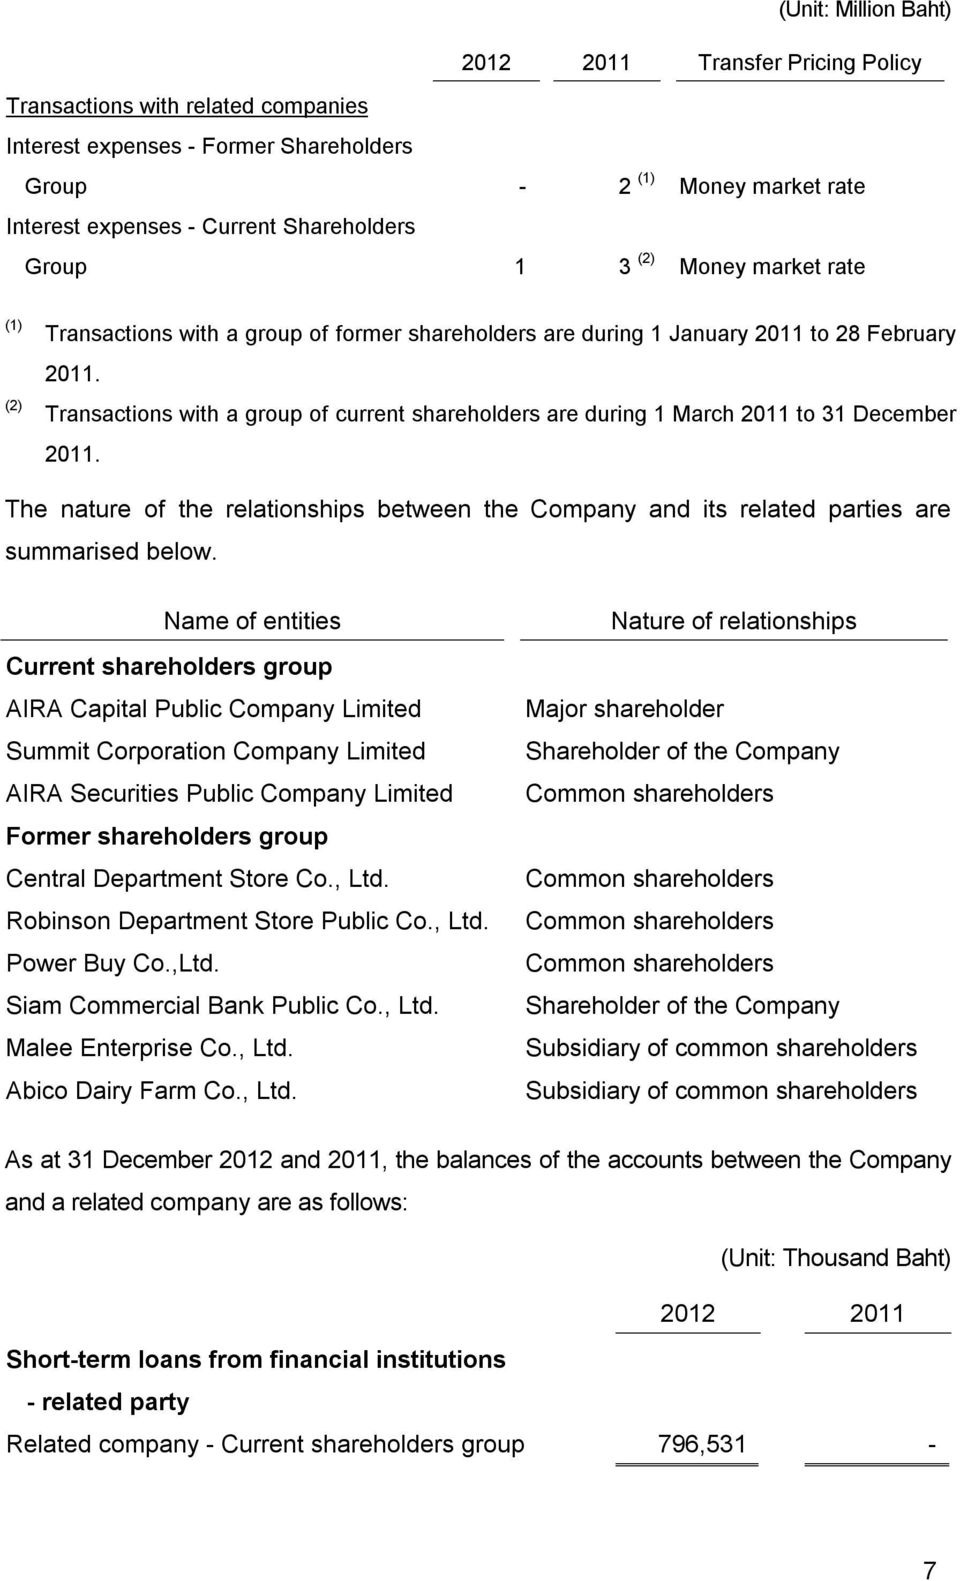 Transactions with a group of current shareholders are during 1 March 2011 to 31 December 2011. The nature of the relationships between the Company and its related parties are summarised below.